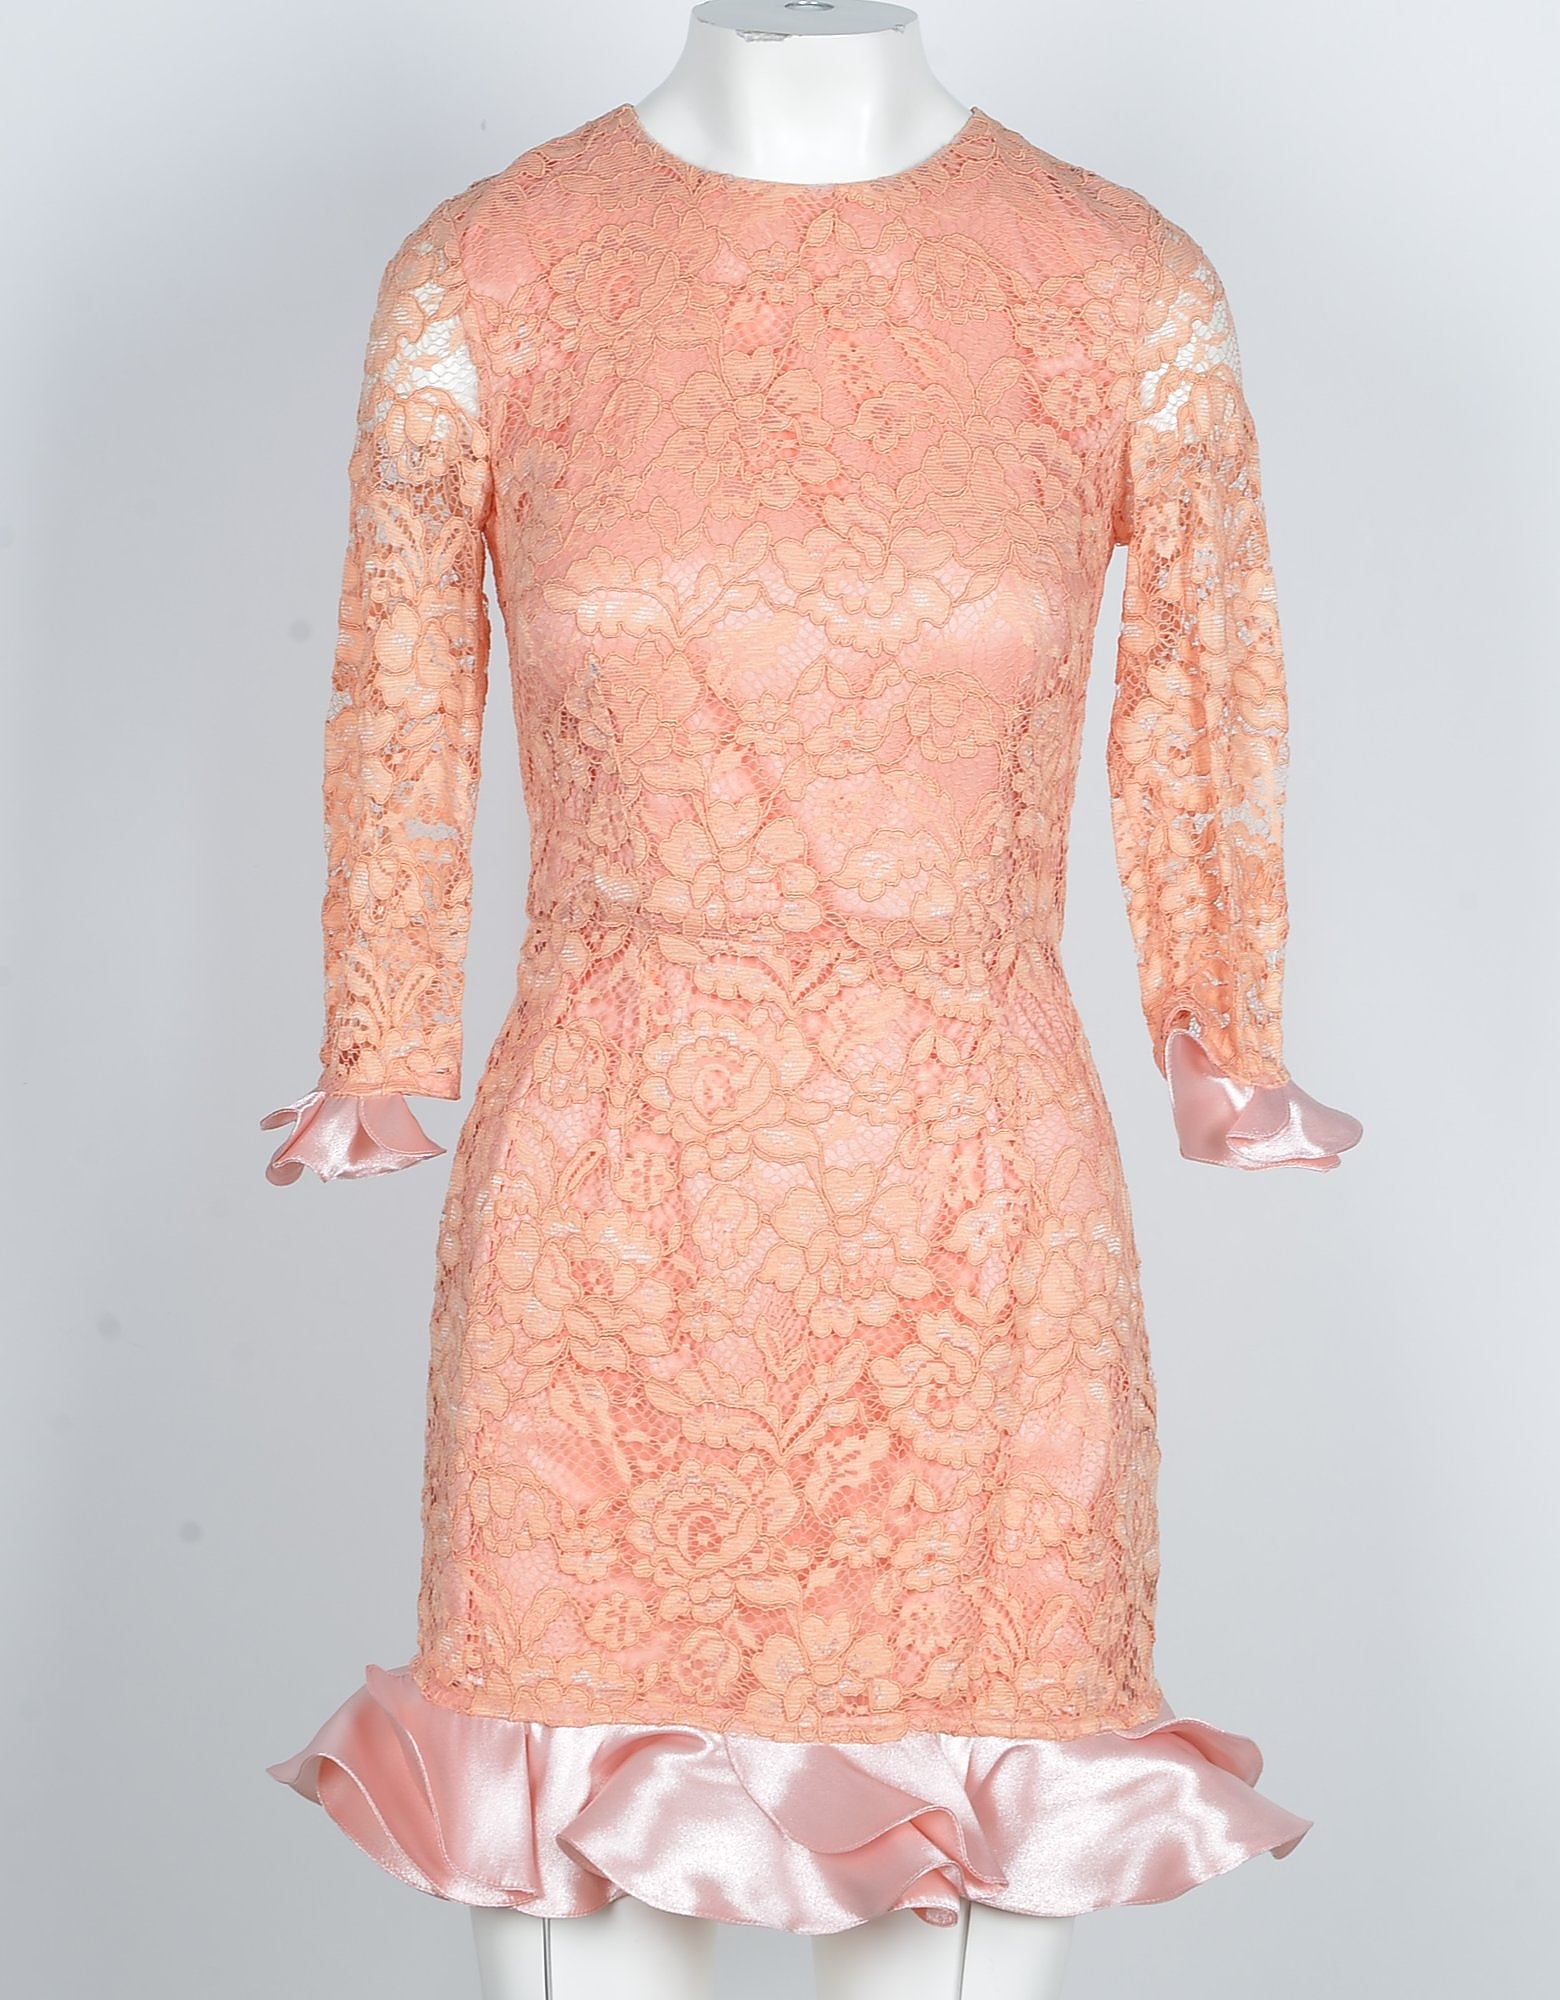 Elisabetta Franchi Designer Dresses & Jumpsuits, Salmon Pink Lace & Ruffles Women's Mini Dress